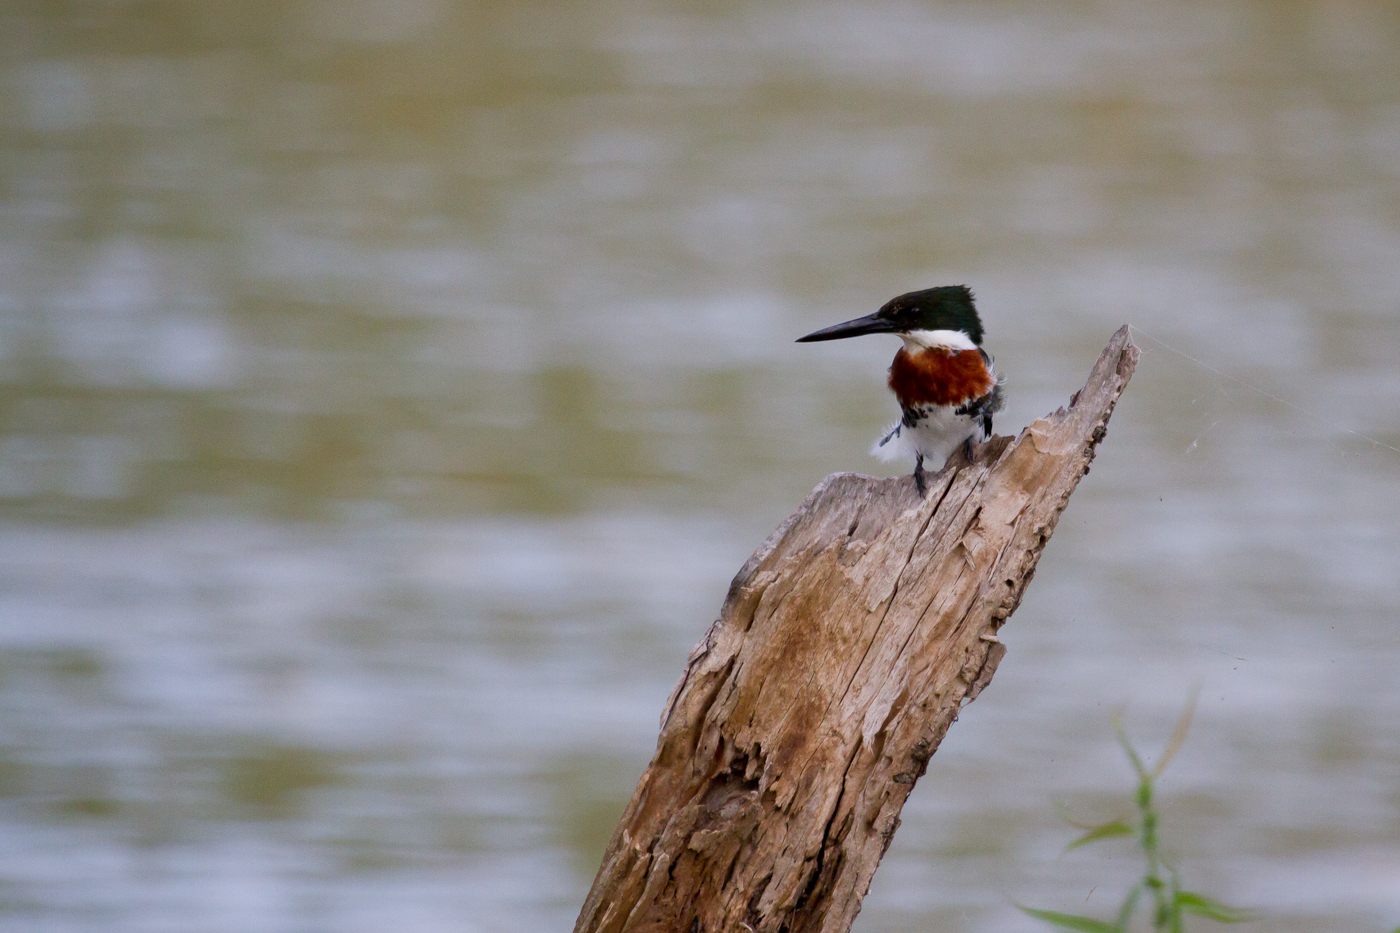 Green Kingfisher (male), Santa Ana NWR, Texas, Apr. 2014